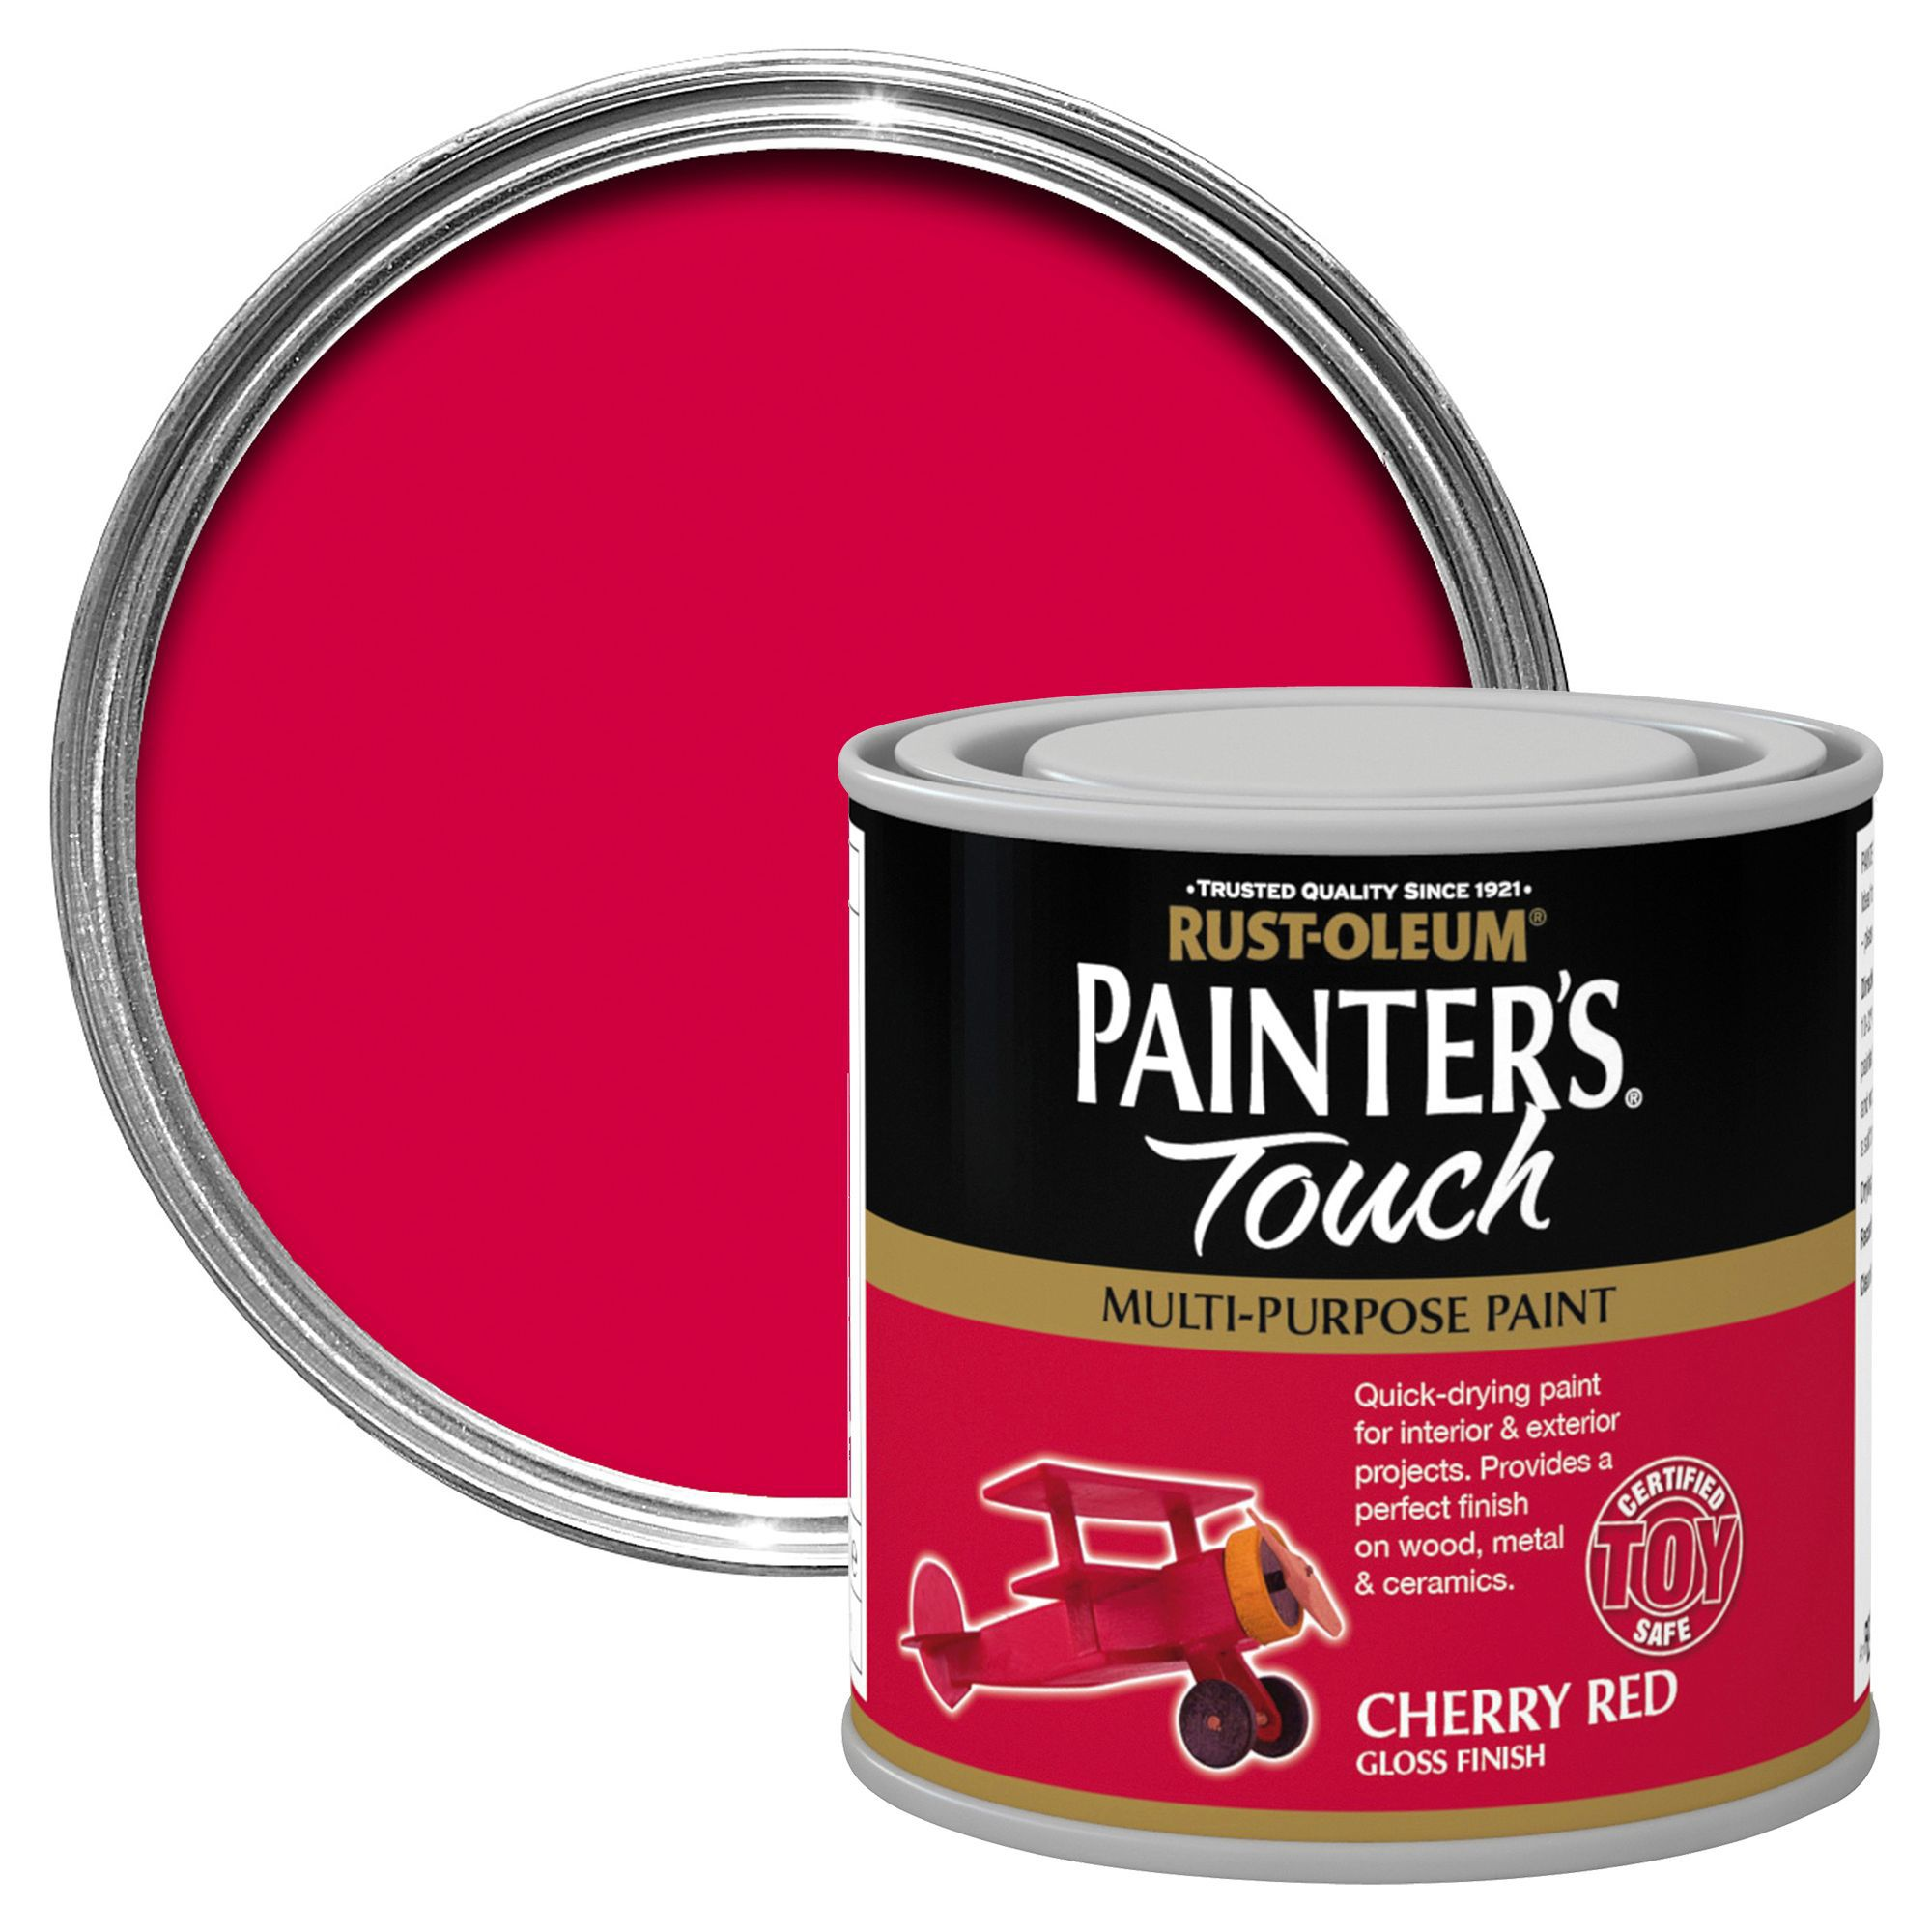 Rust-oleum Painter's Touch Interior & Exterior Cherry Red Gloss Multipurpose Paint 250ml